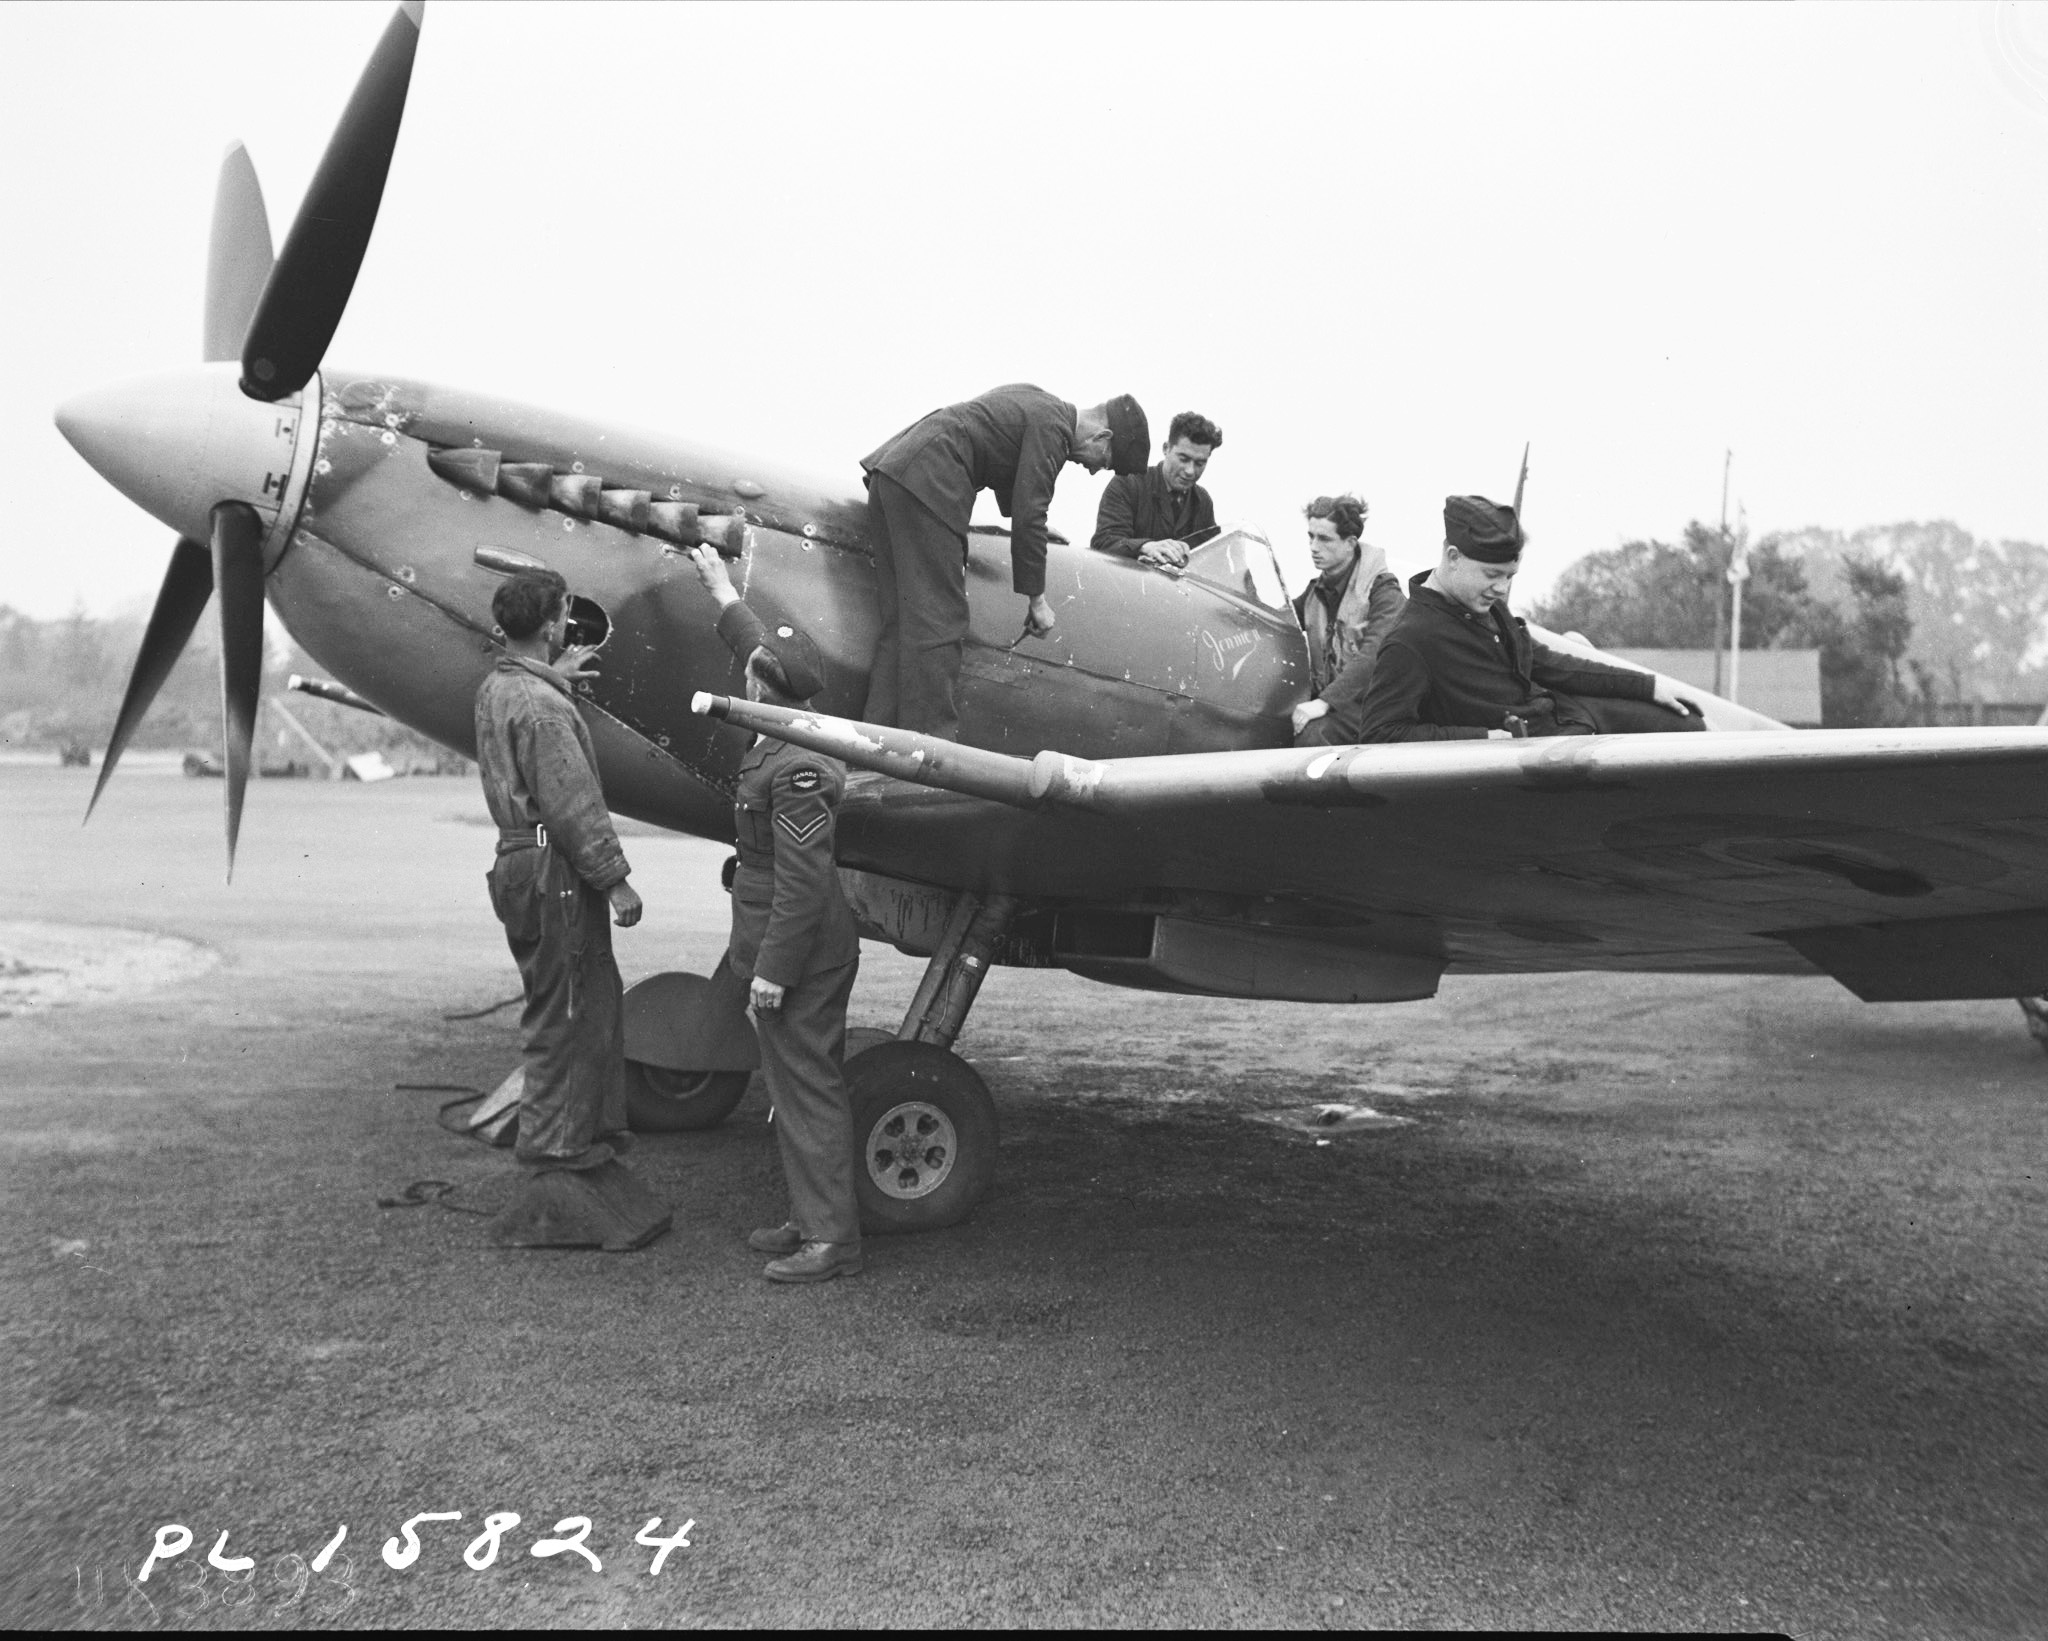 This ground crew could refuel and rearm a Spitfire in fewer than four minutes. Ground crews were important everywhere, especially in Fighter Command, where they had to work fast. PHOTO: DND